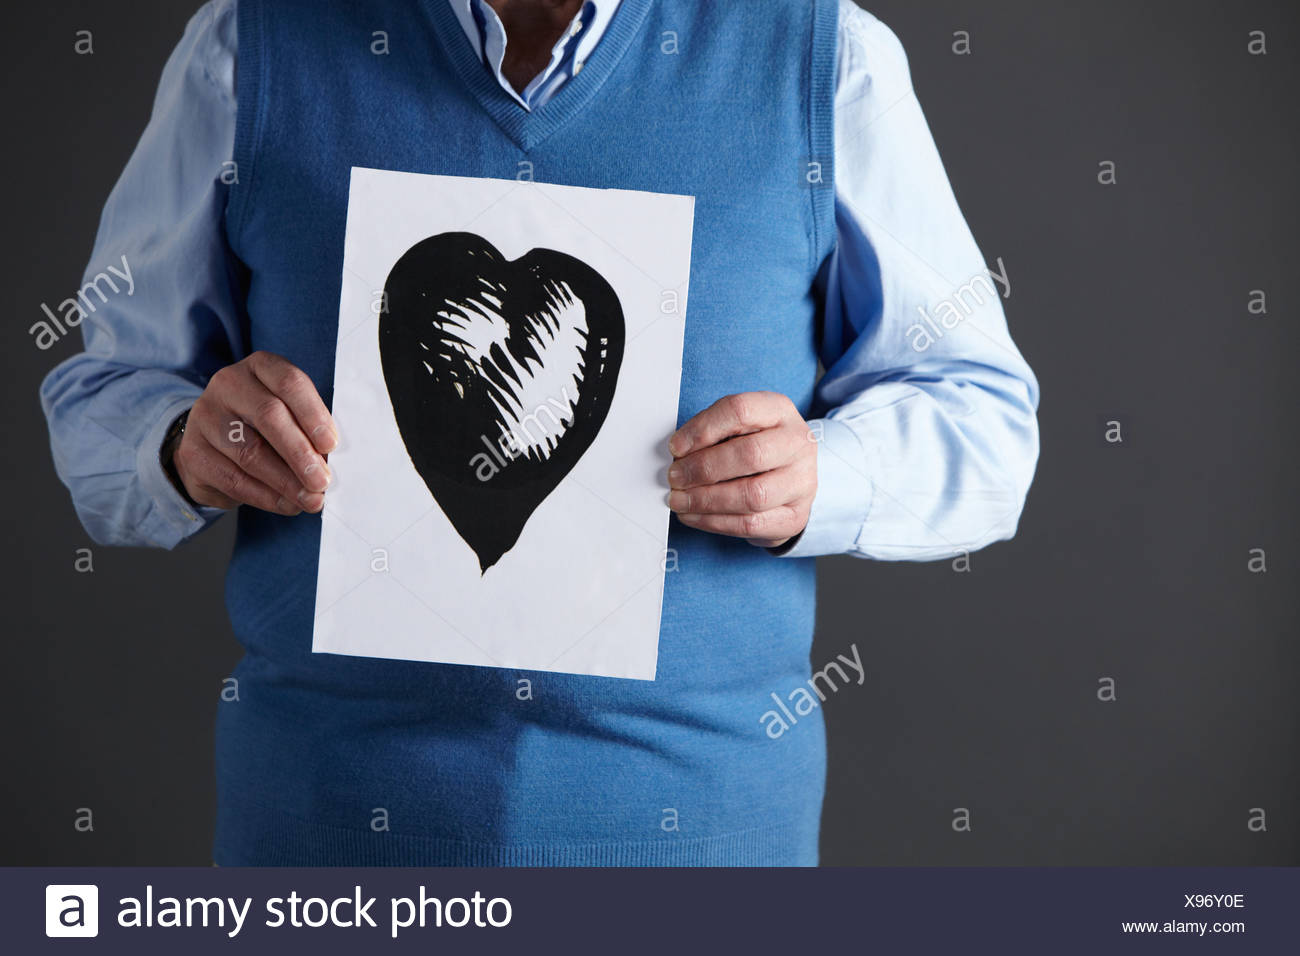 Senior man holding ink drawing of heart - Stock Image